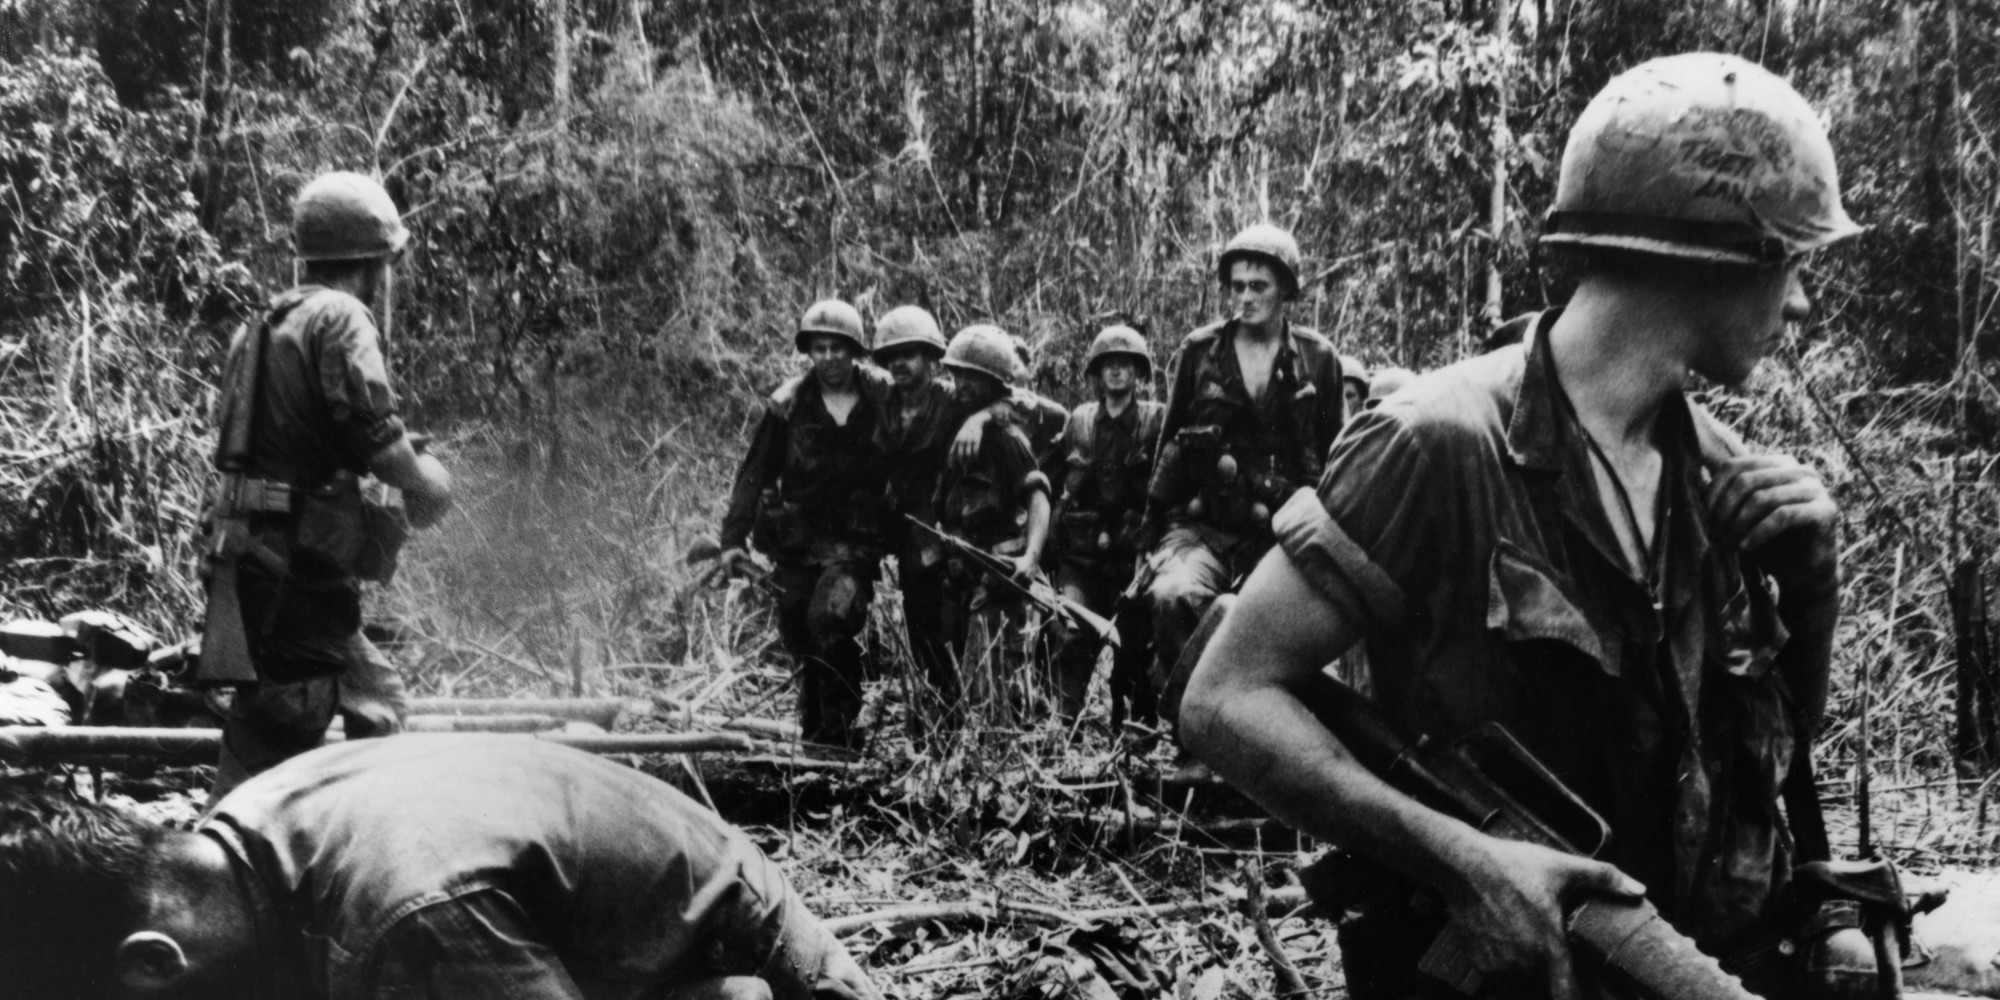 the wars of vietnam The vietnam war was the struggle between forces attempting to create a  communist government and the us attempting to prevent the spread.